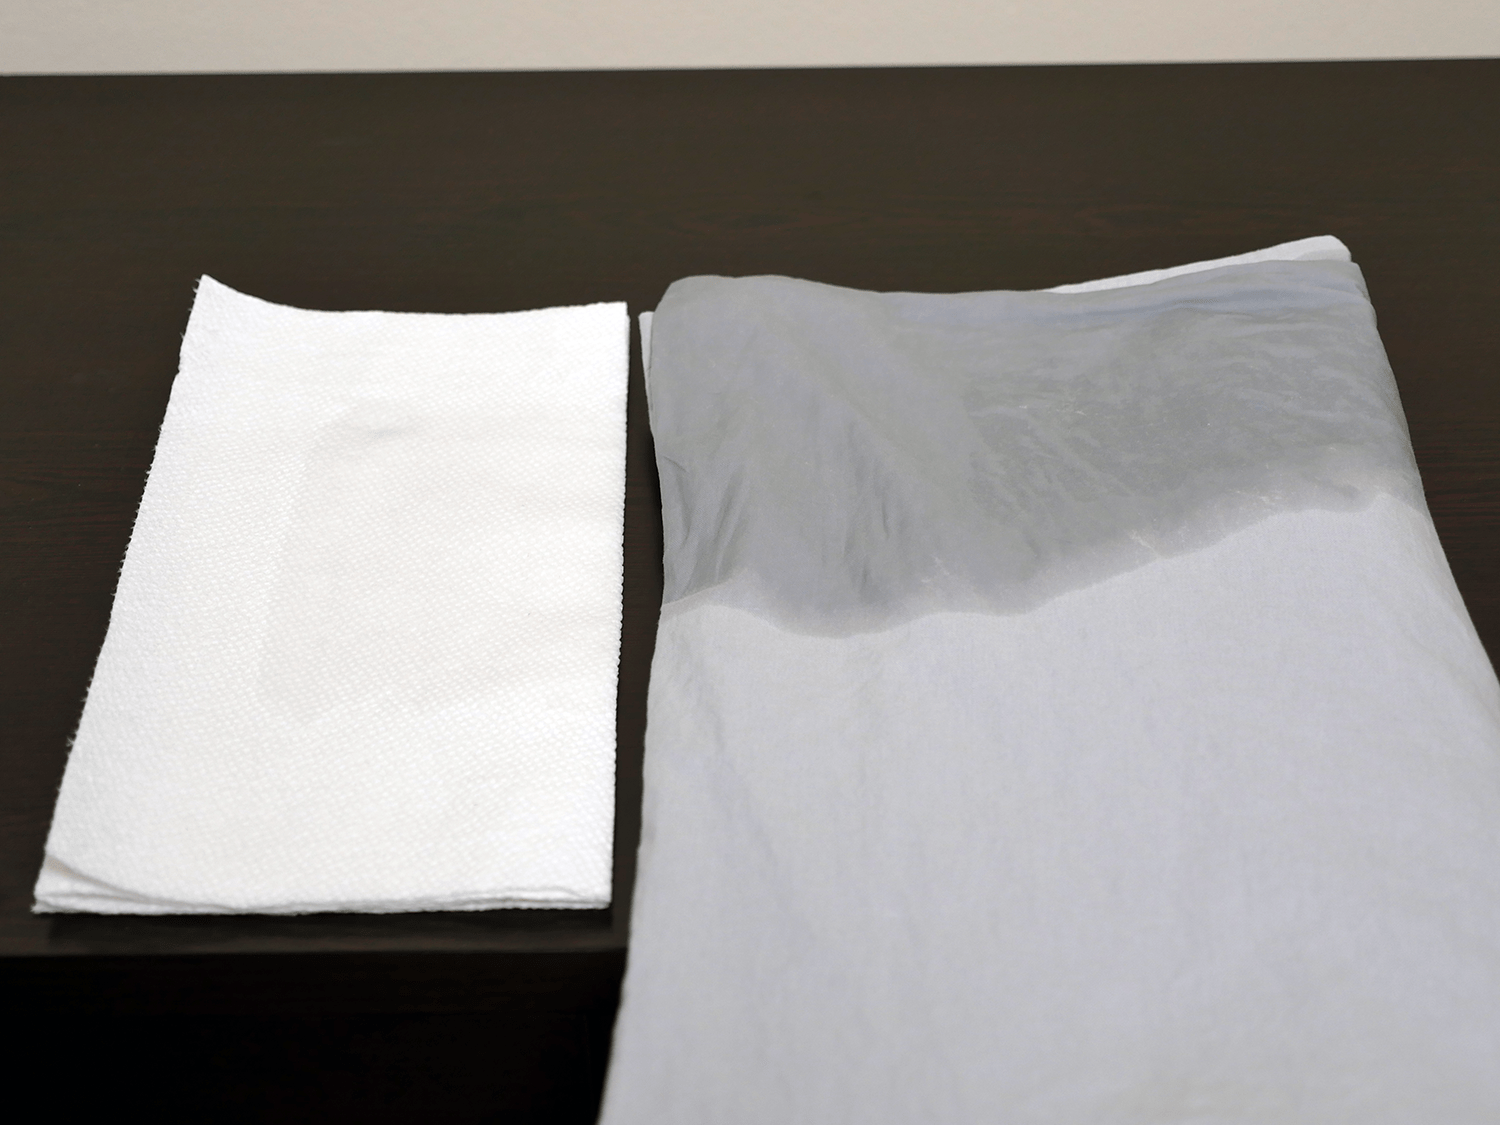 bedface-sheets-color-test Bedface Sheets Review